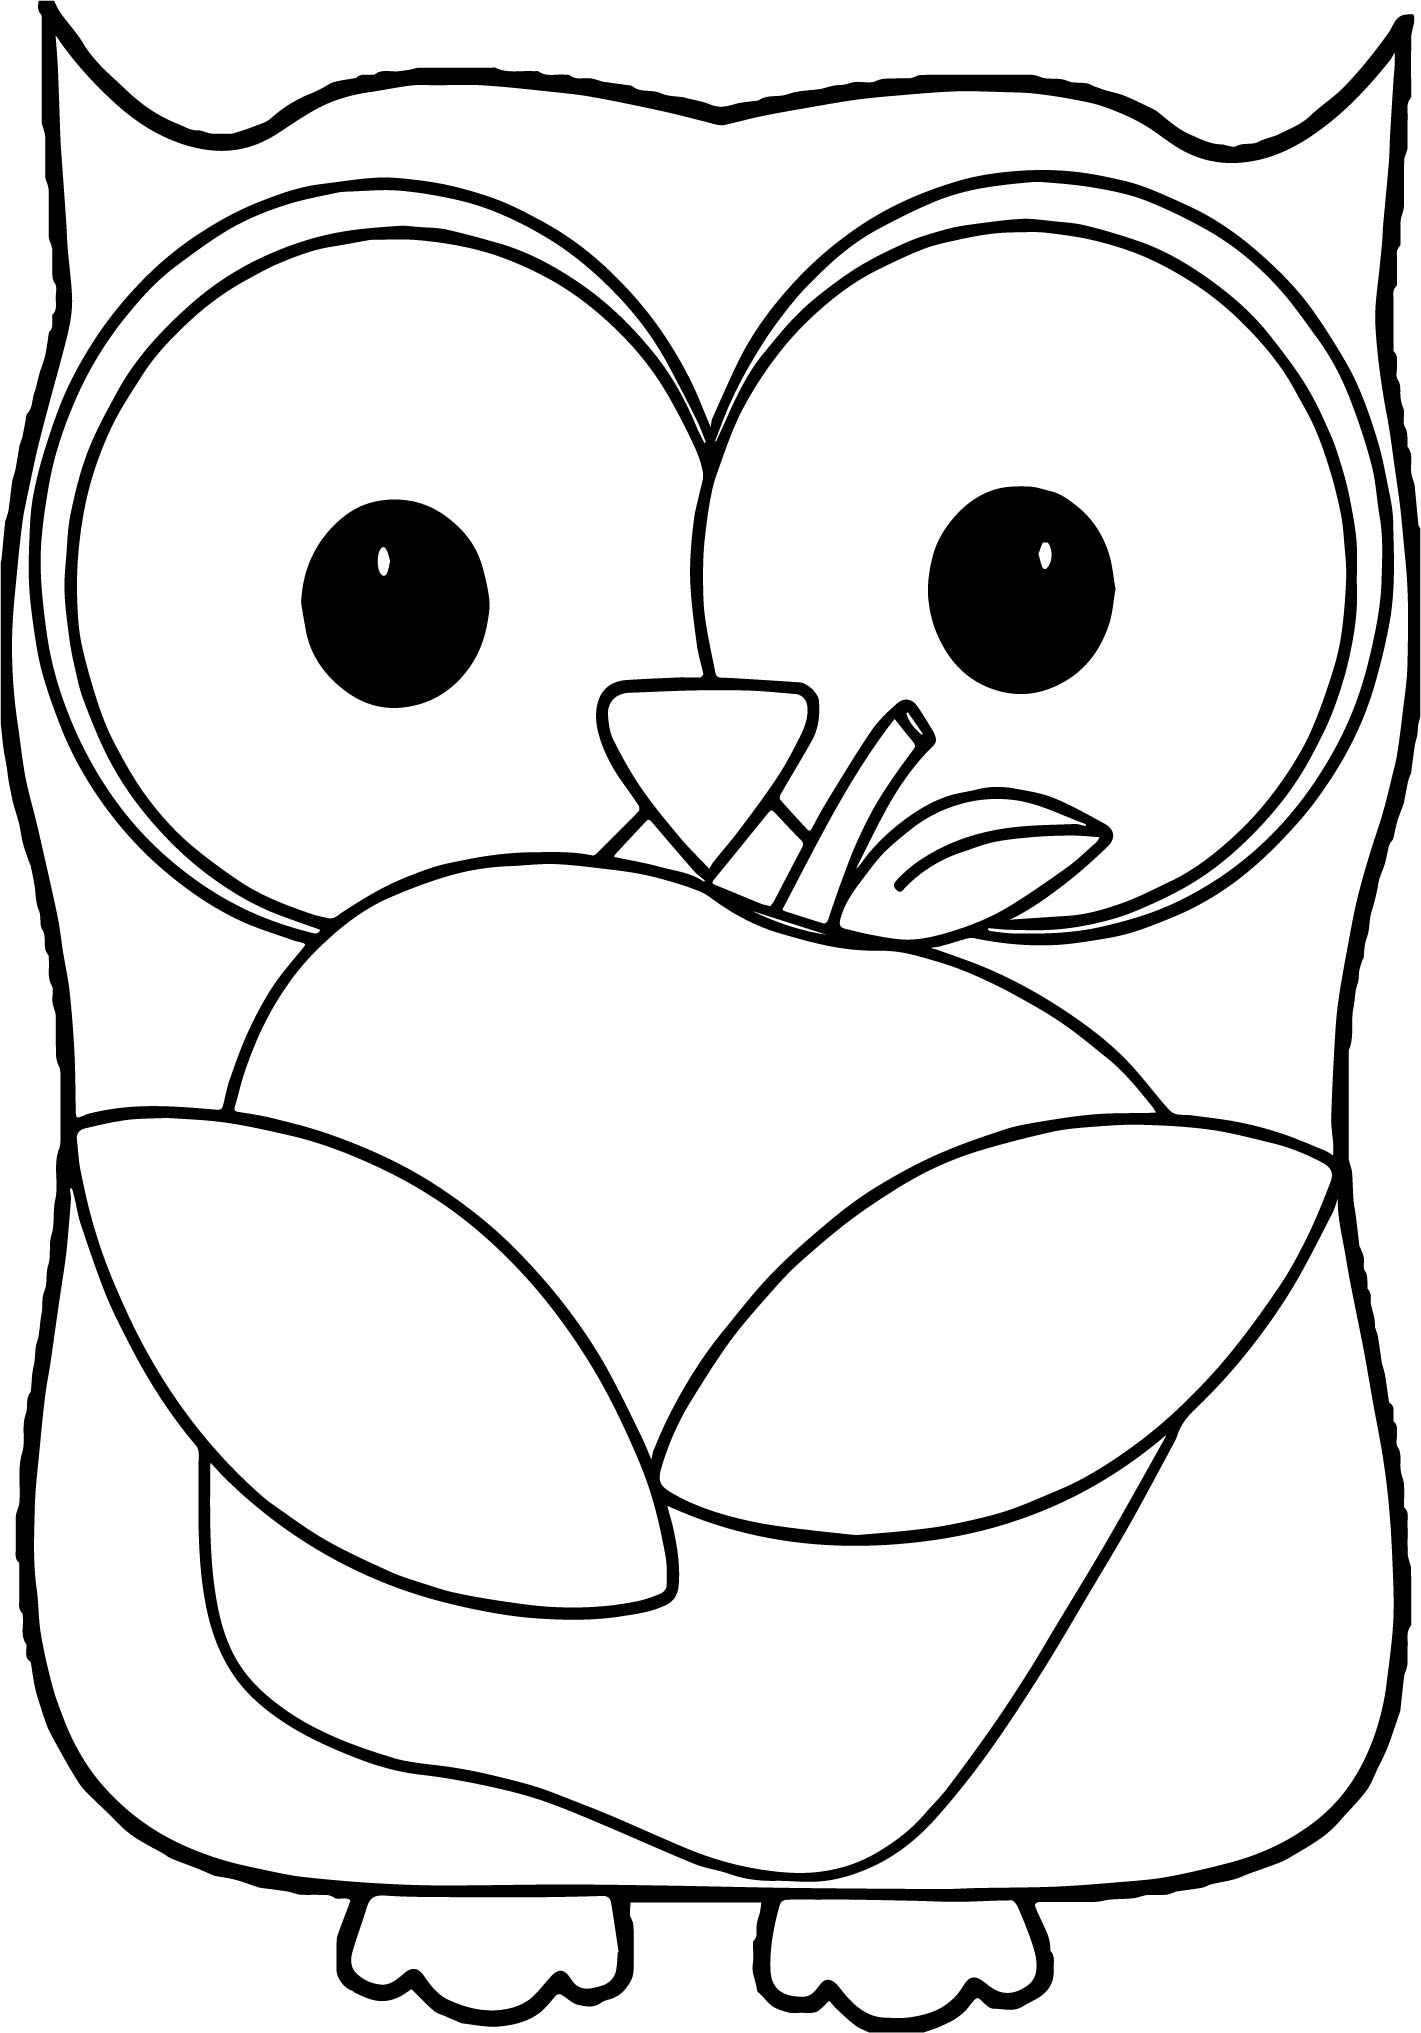 Owl Holding Green Apple Coloring Page